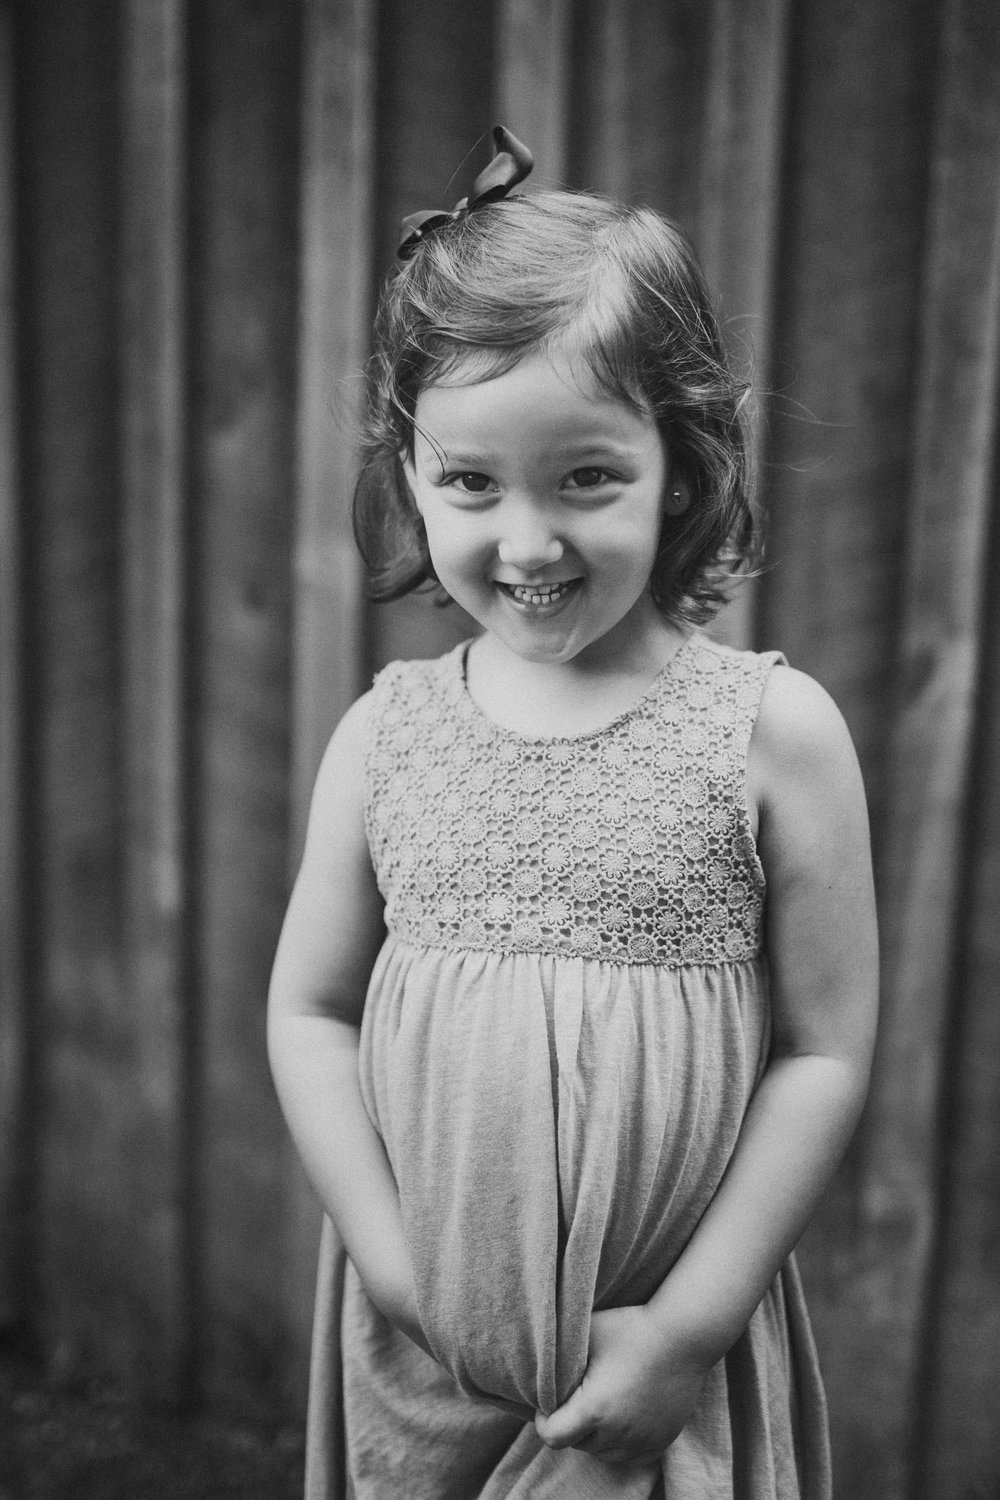 Black and white childhood girl portrait Claude Moore Park Heritage Farm Museum Sterling Virginia Lifestyle Documentary Fall Family Marti Austin Photography